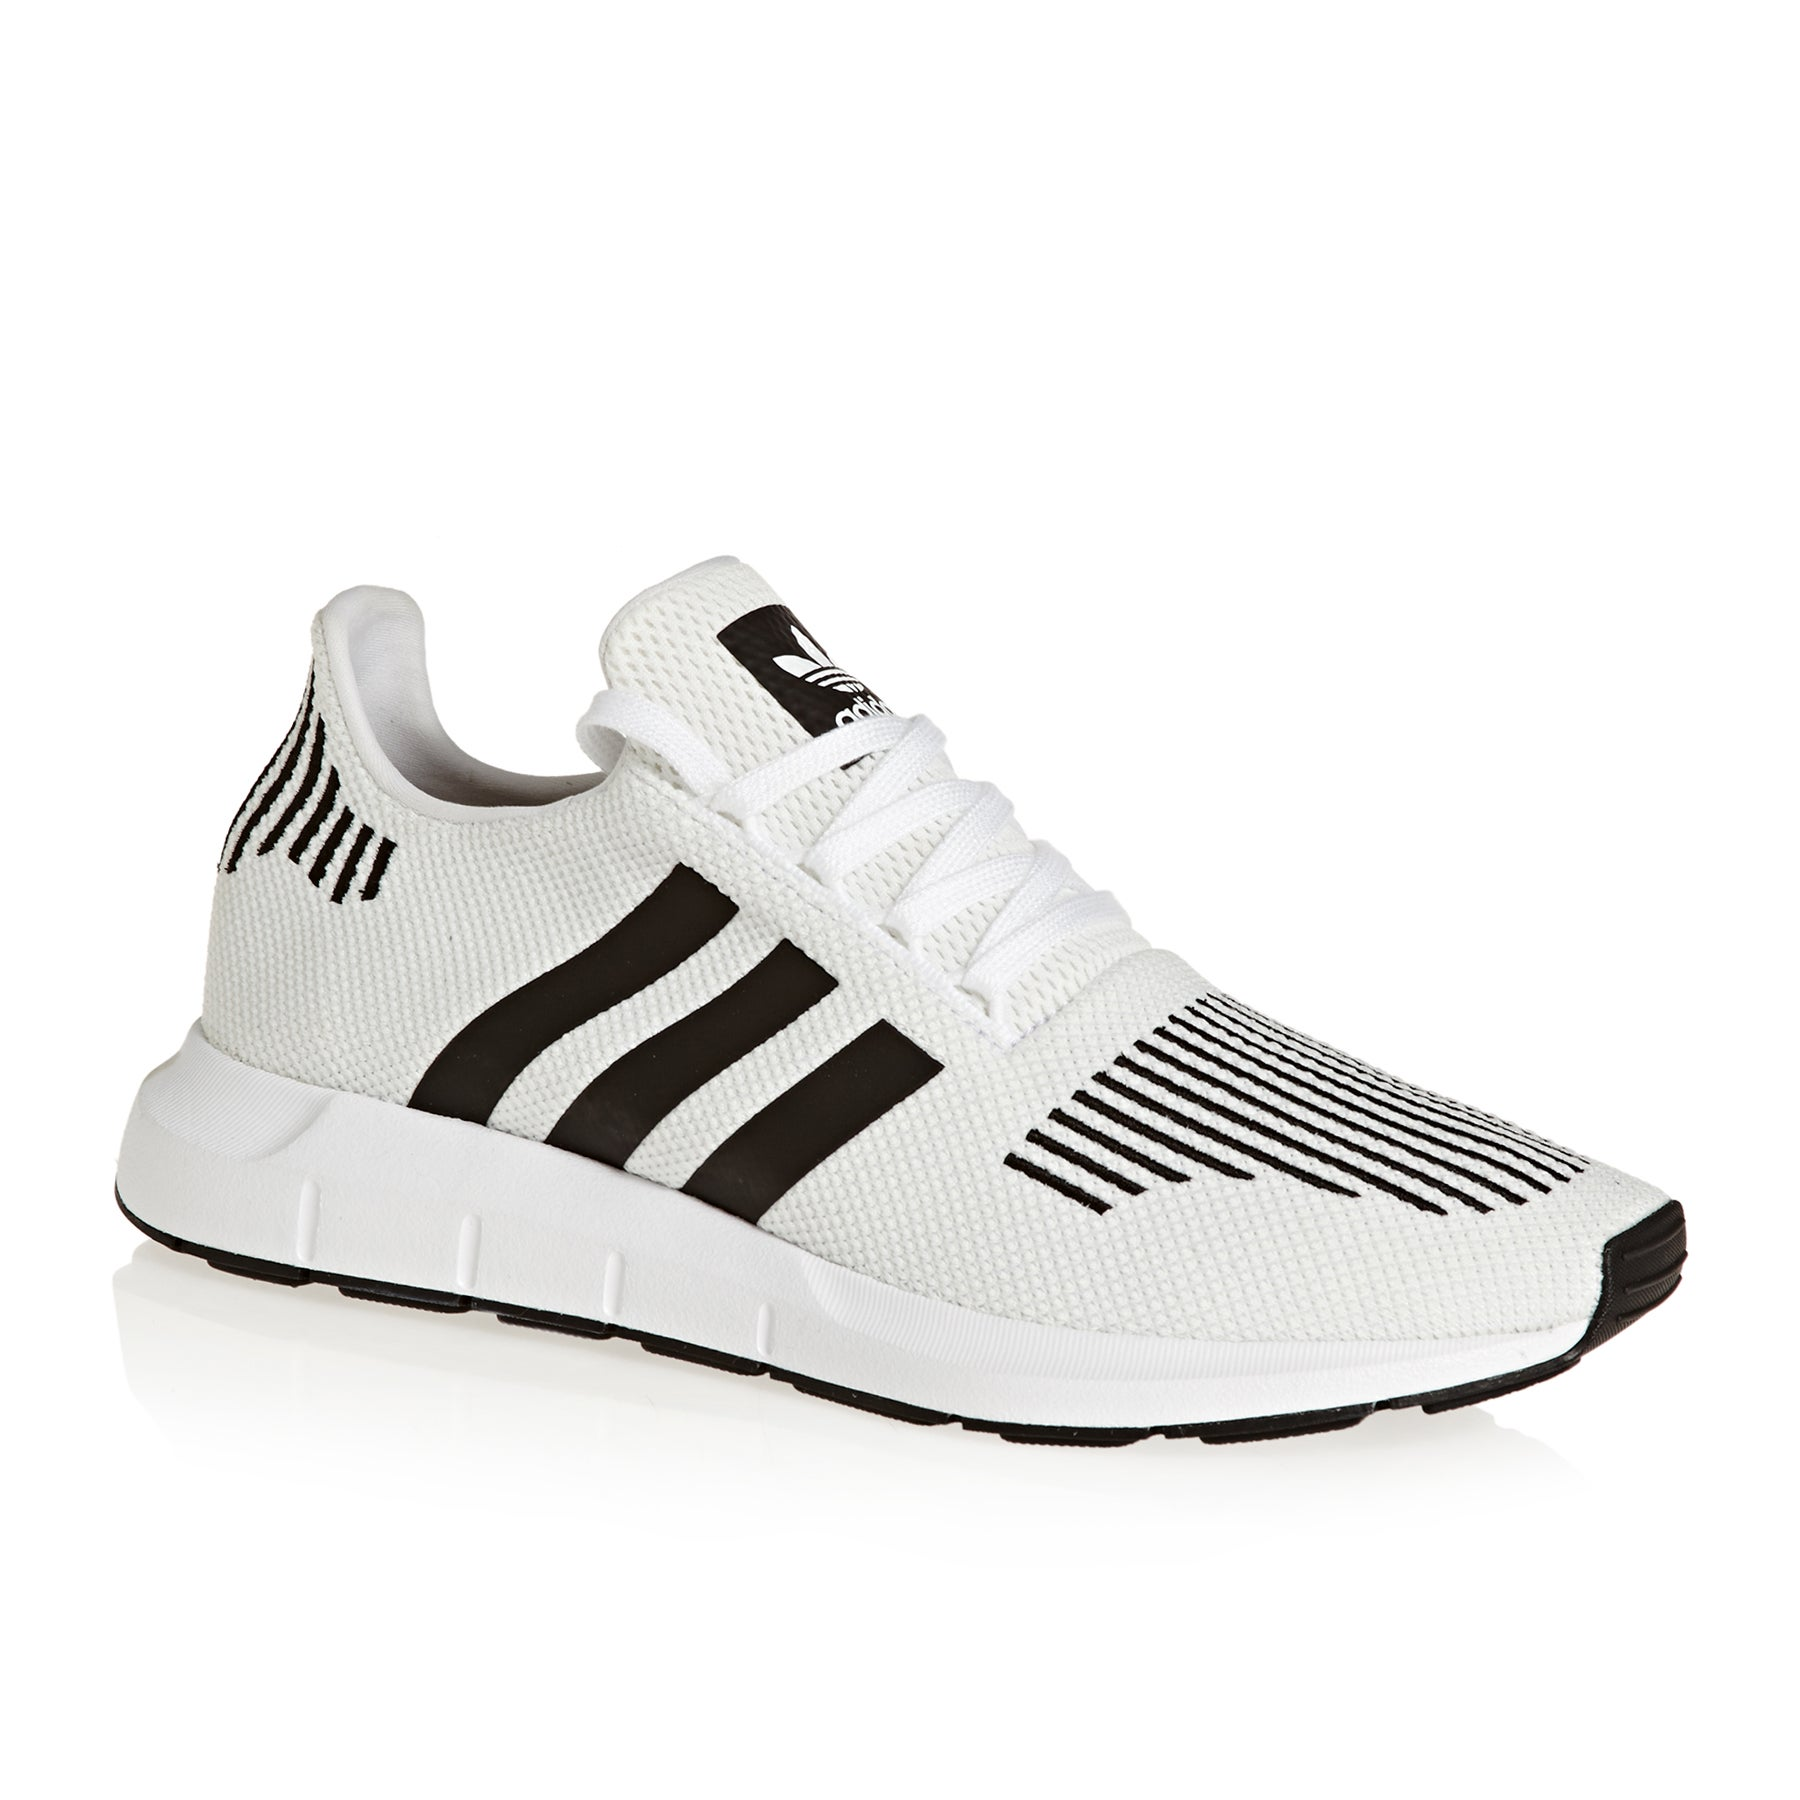 d418430ca Adidas Originals Swift Run Shoes. White Black Medium Grey Heather